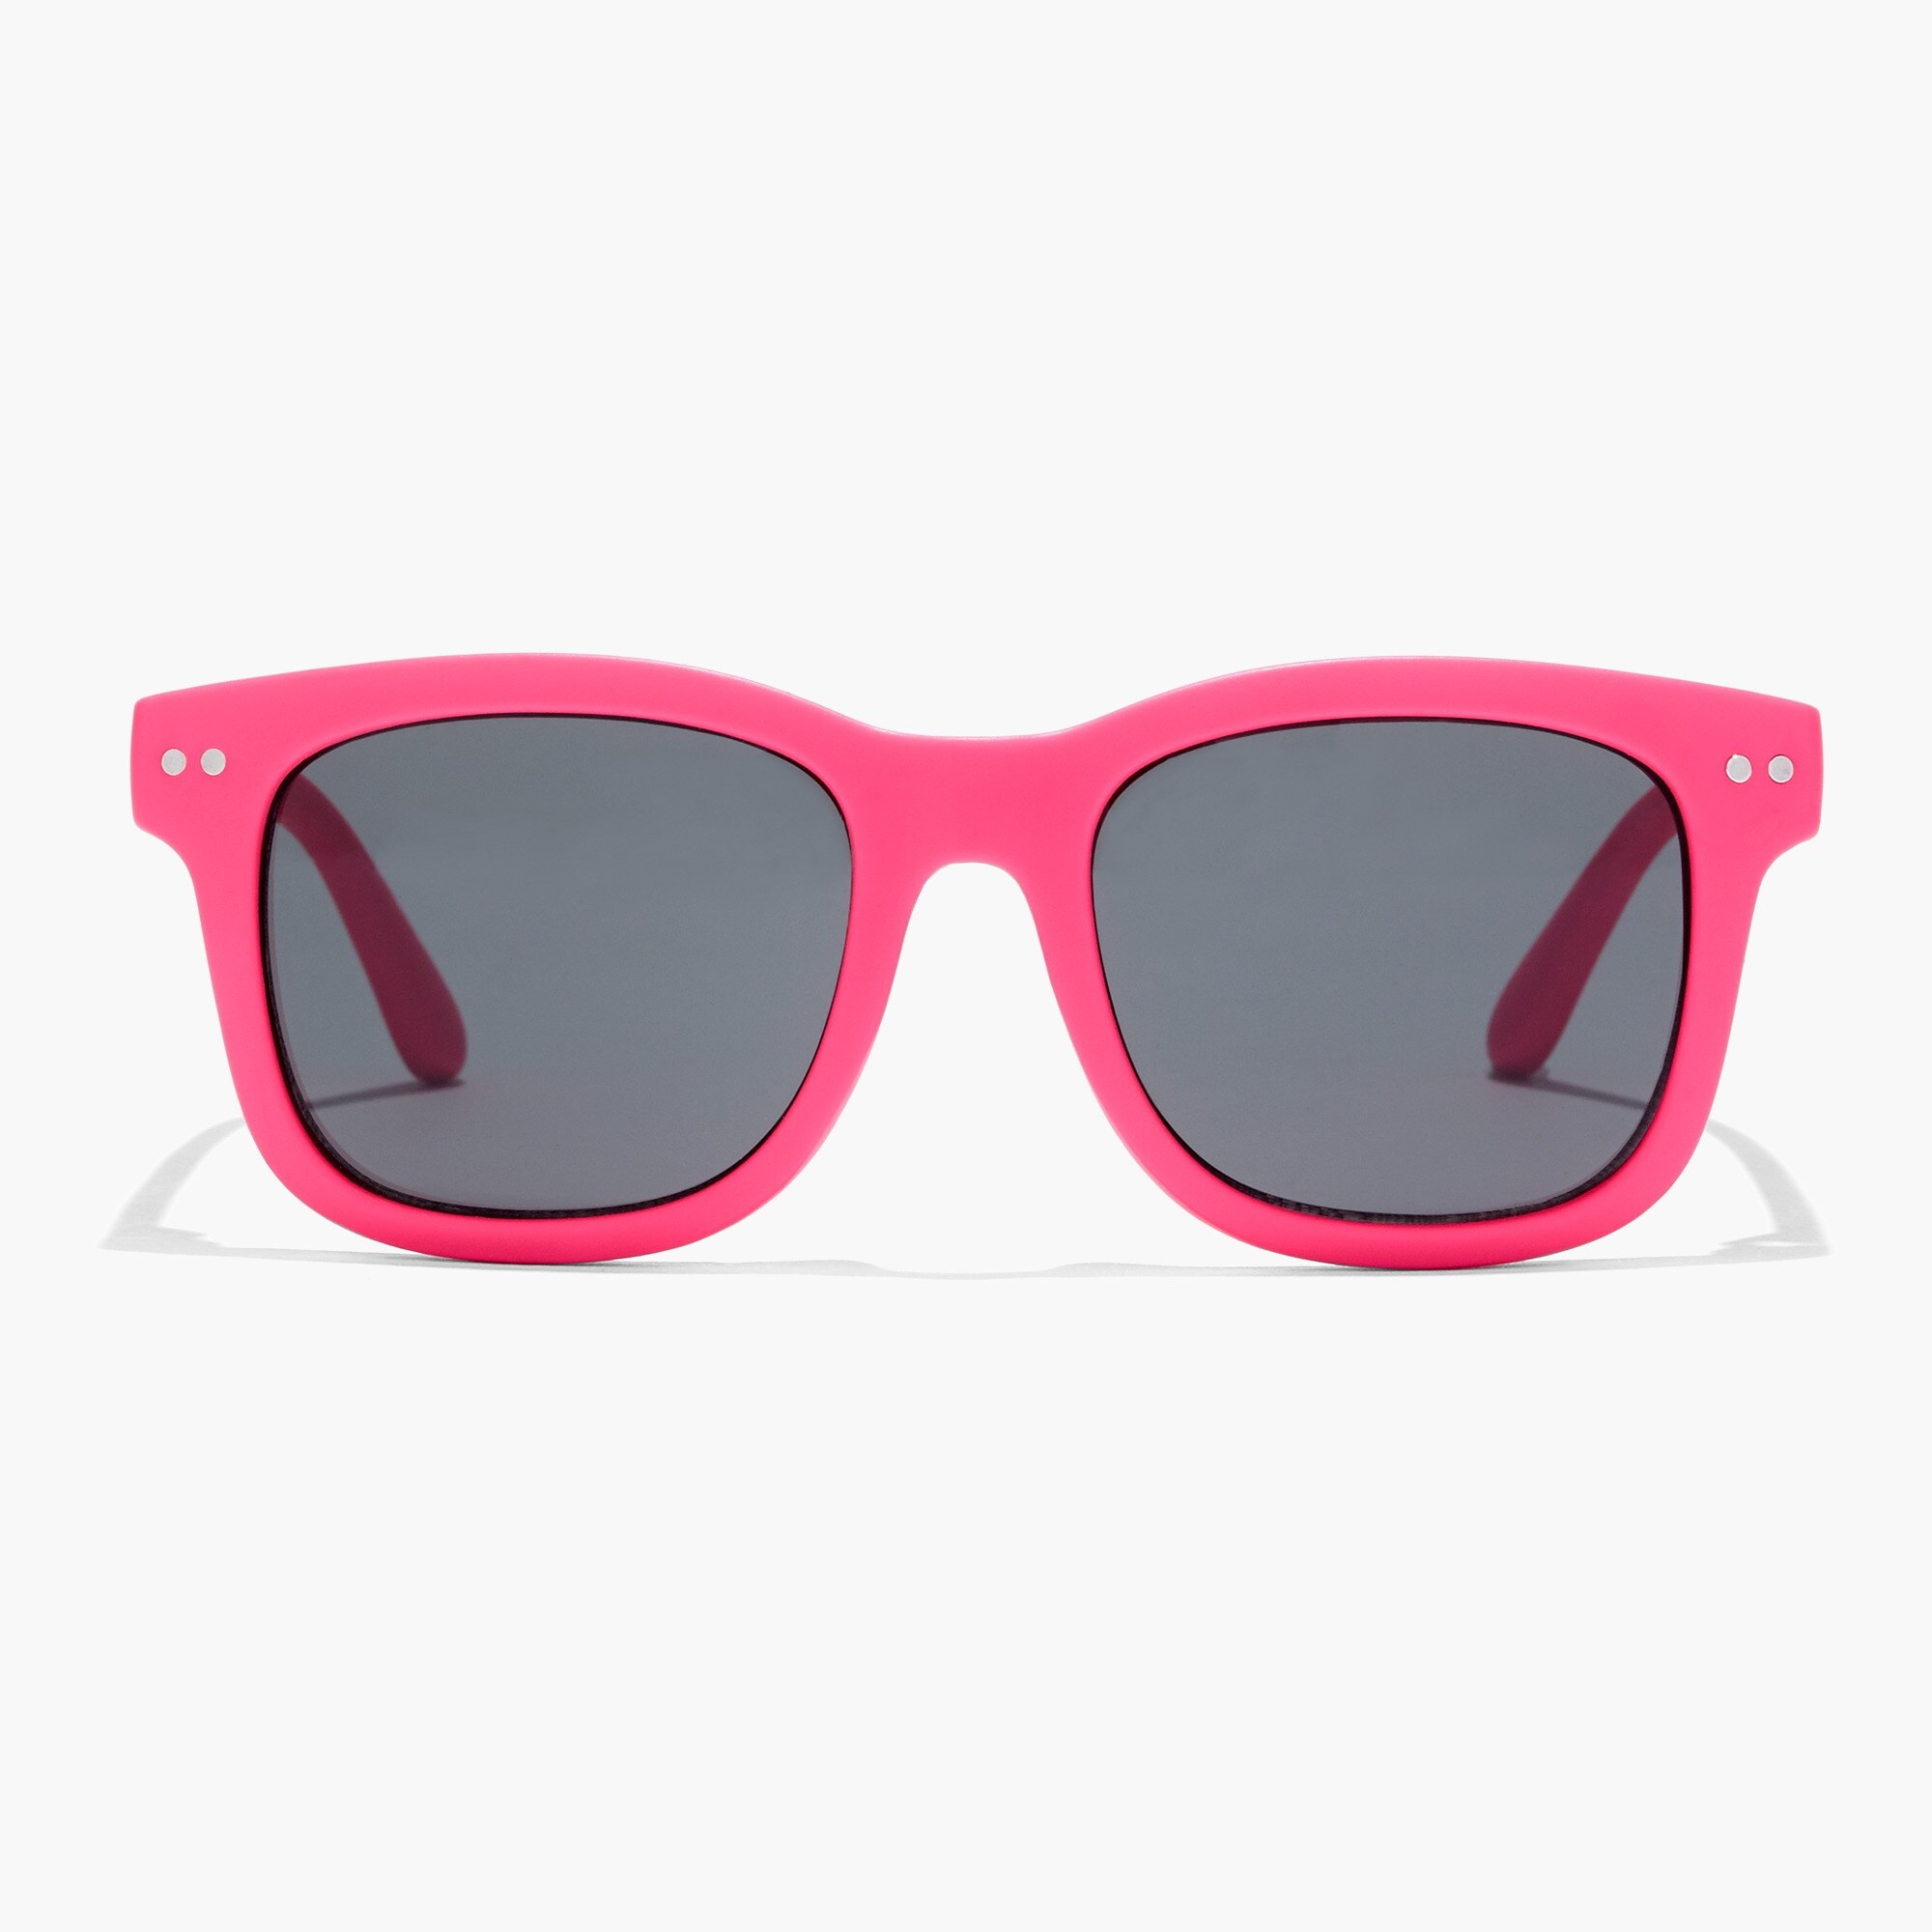 Image 1 for Kids' sunnies